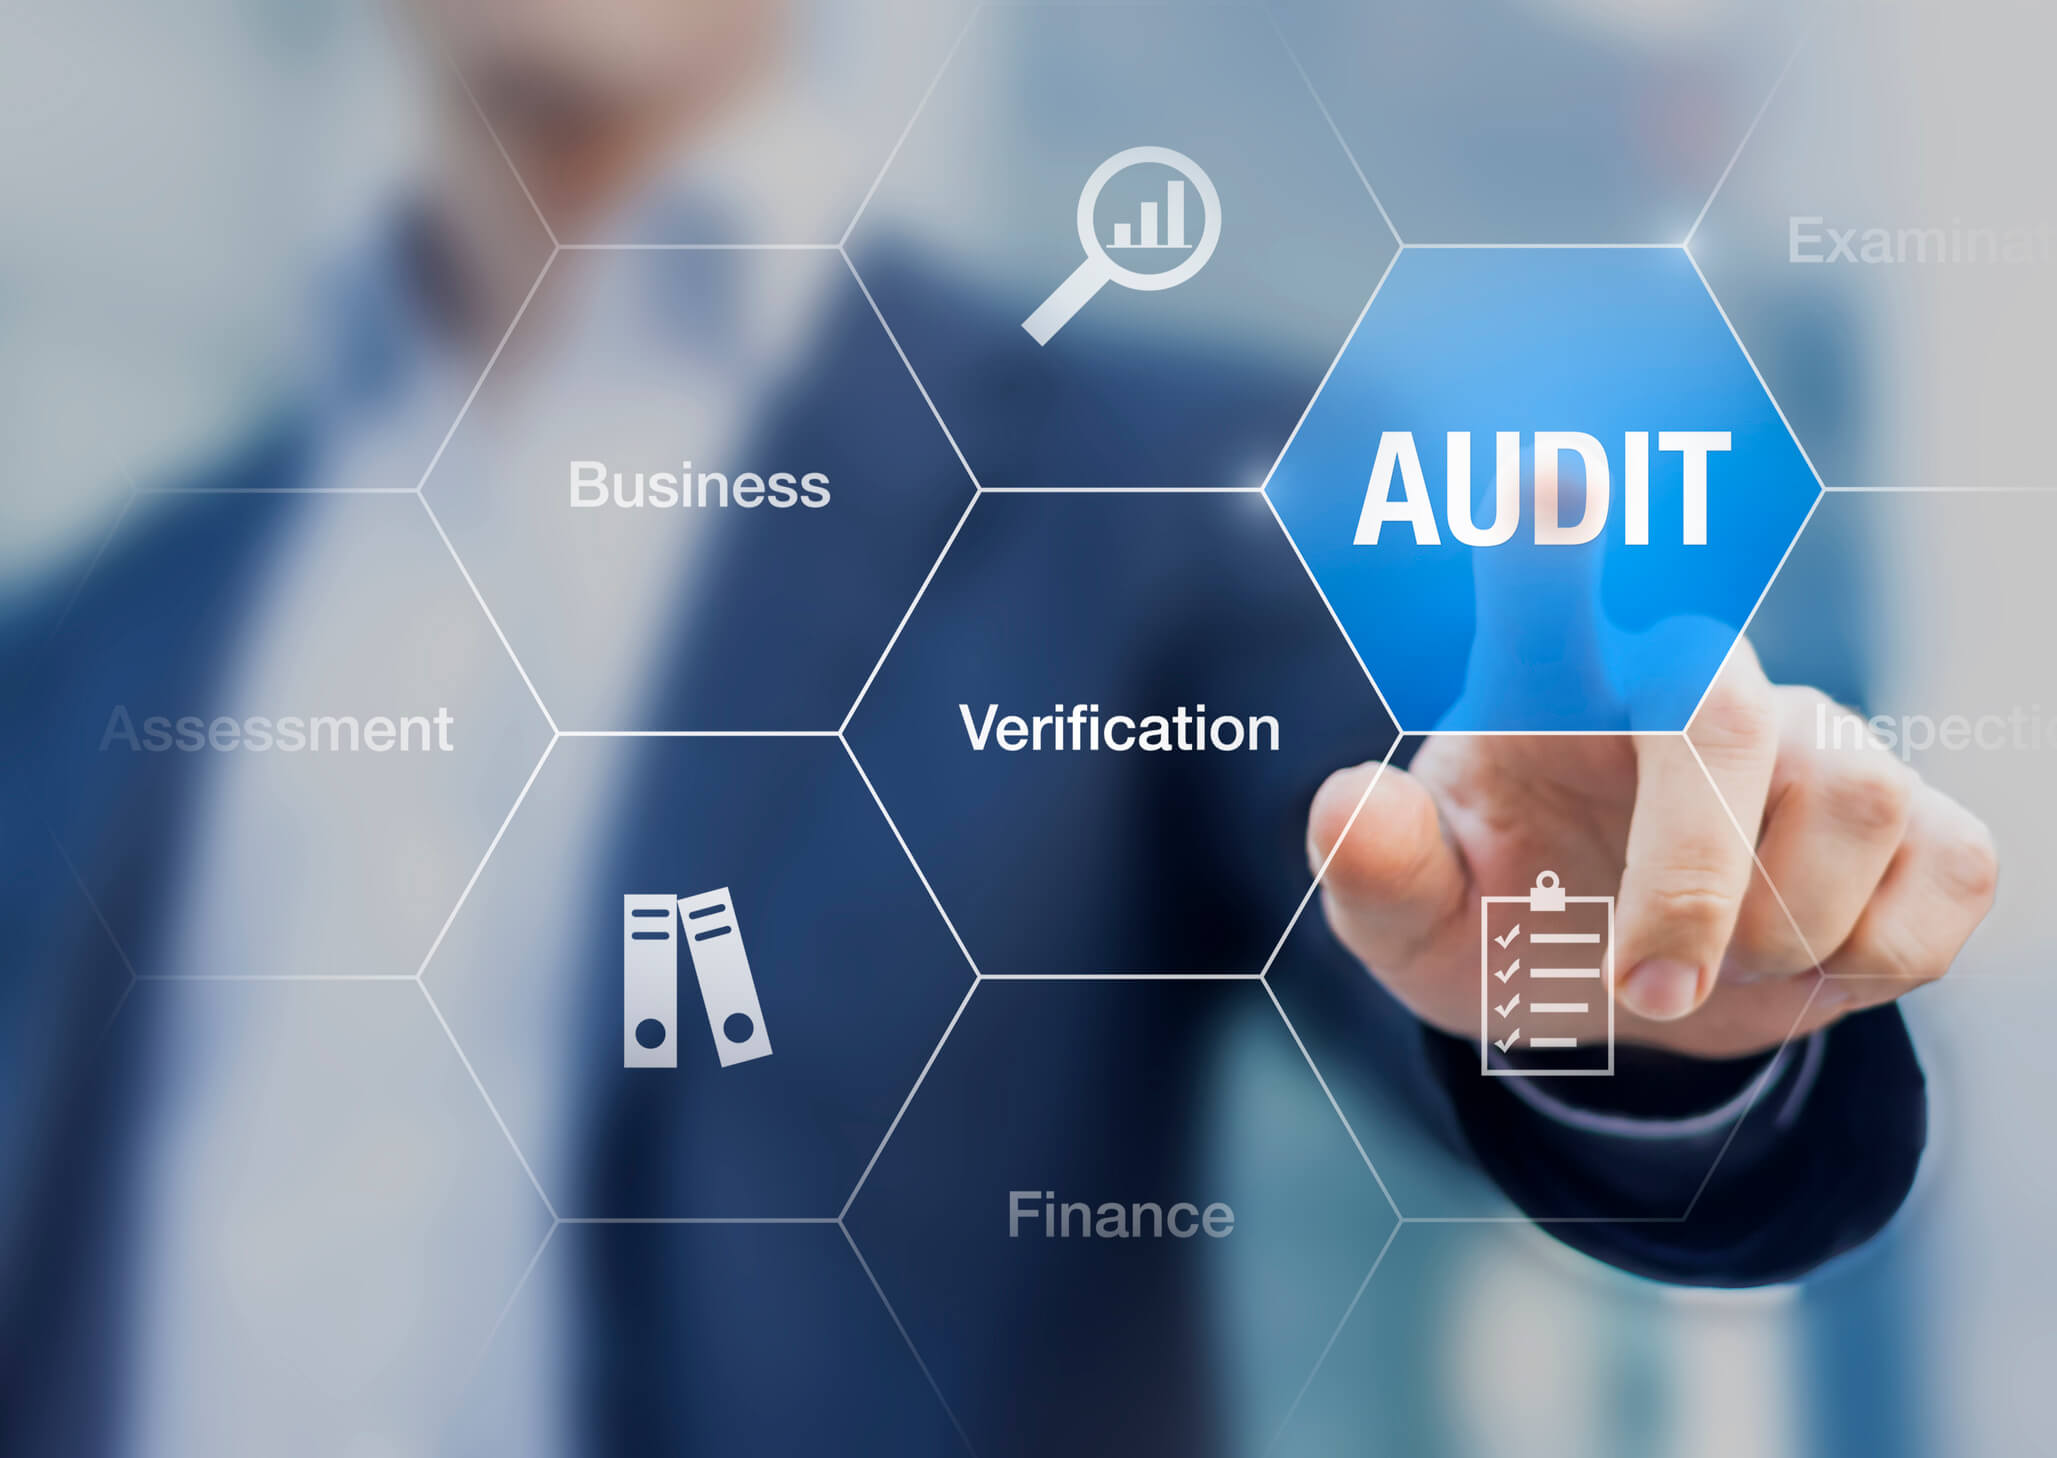 sox-audit-services-k-38-consulting-launches-raleigh-nc-sox-services-to-public-companies